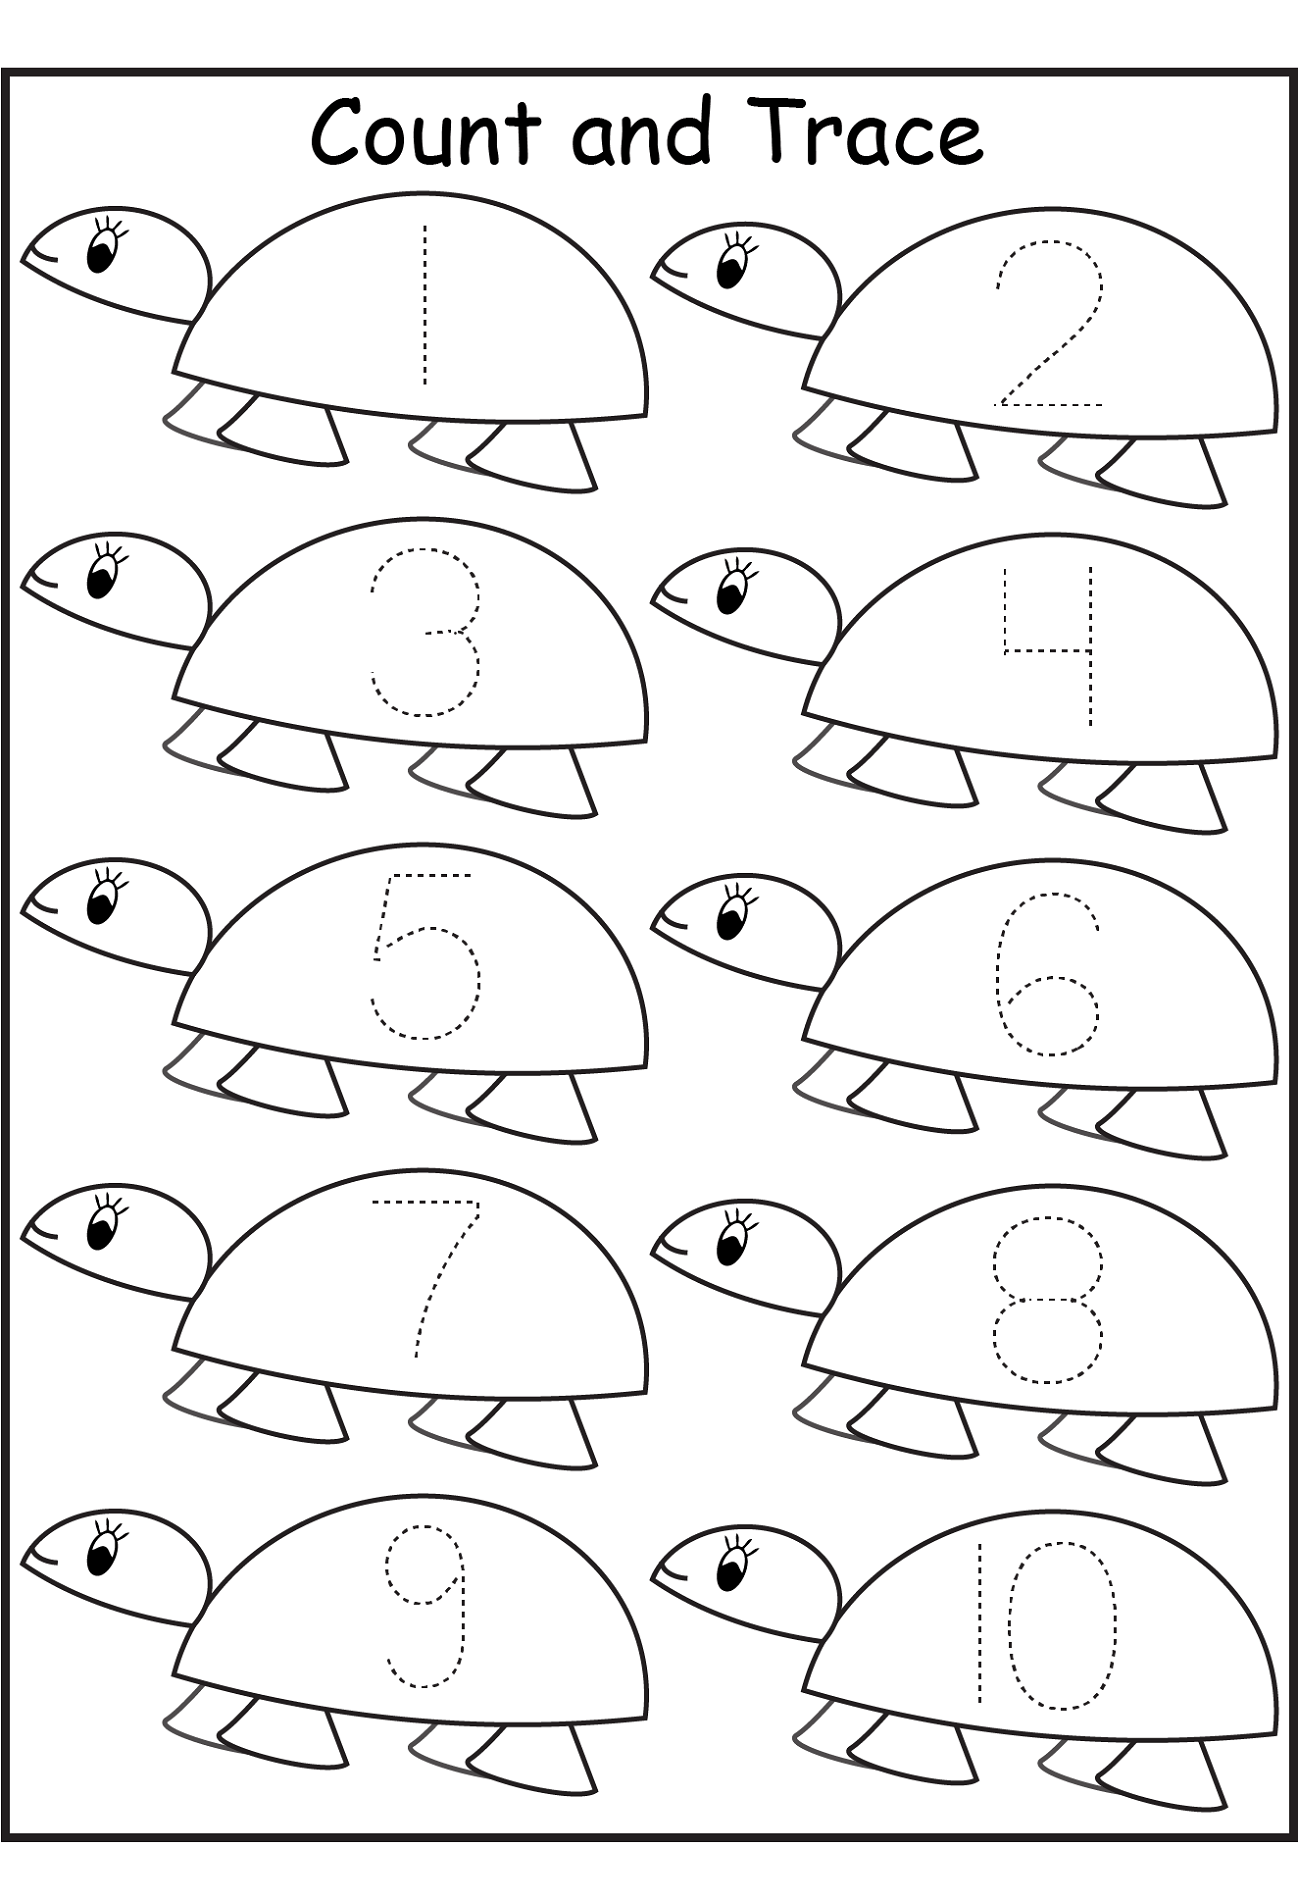 Free Preschool Printable Activity